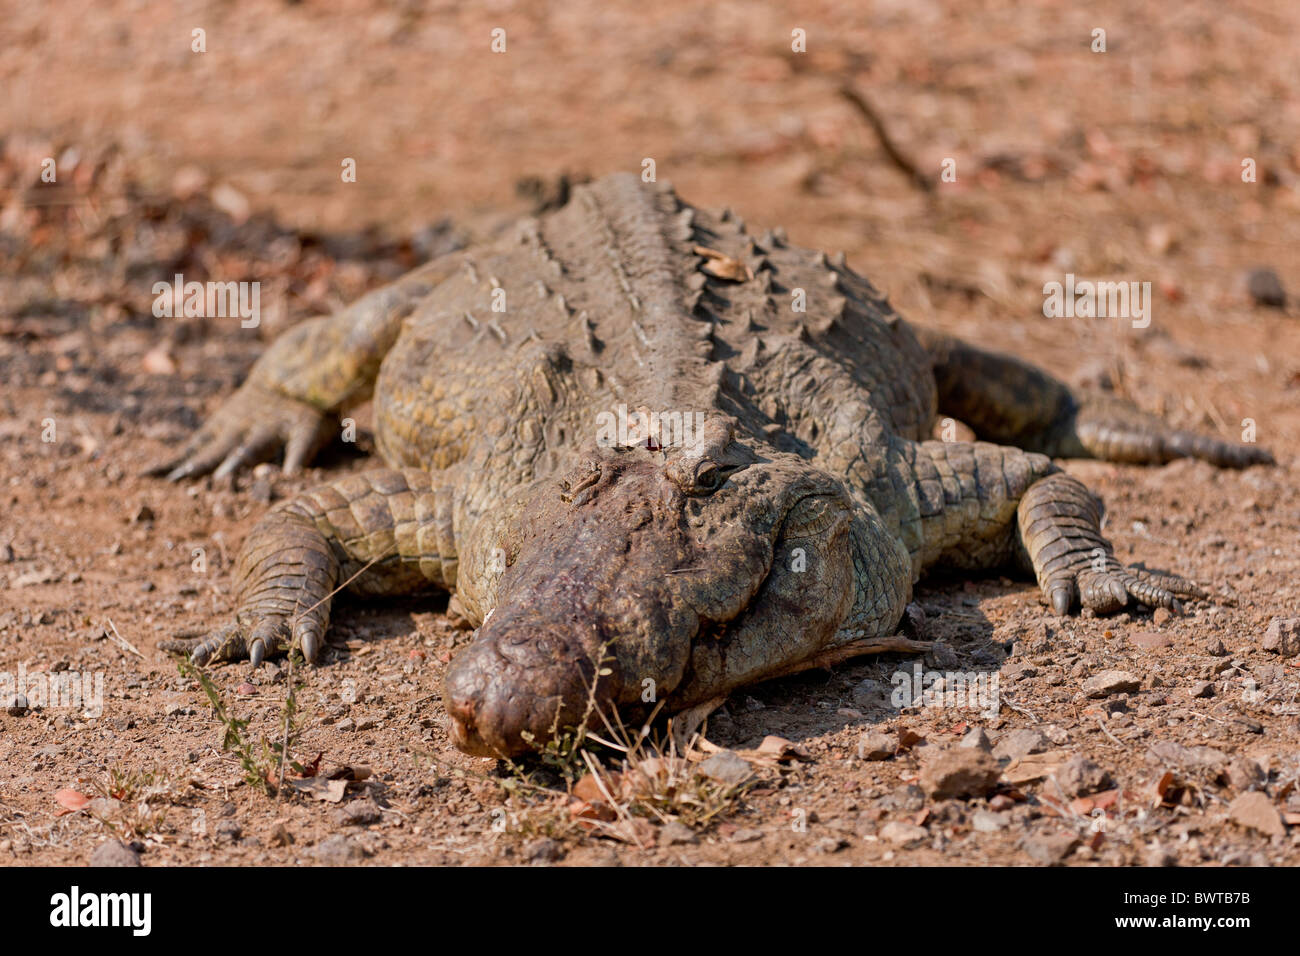 Portrait of a nile crocodile (Crocodylus niloticus) at a waterhole. The photo was taken in Kruger National Park, - Stock Photo